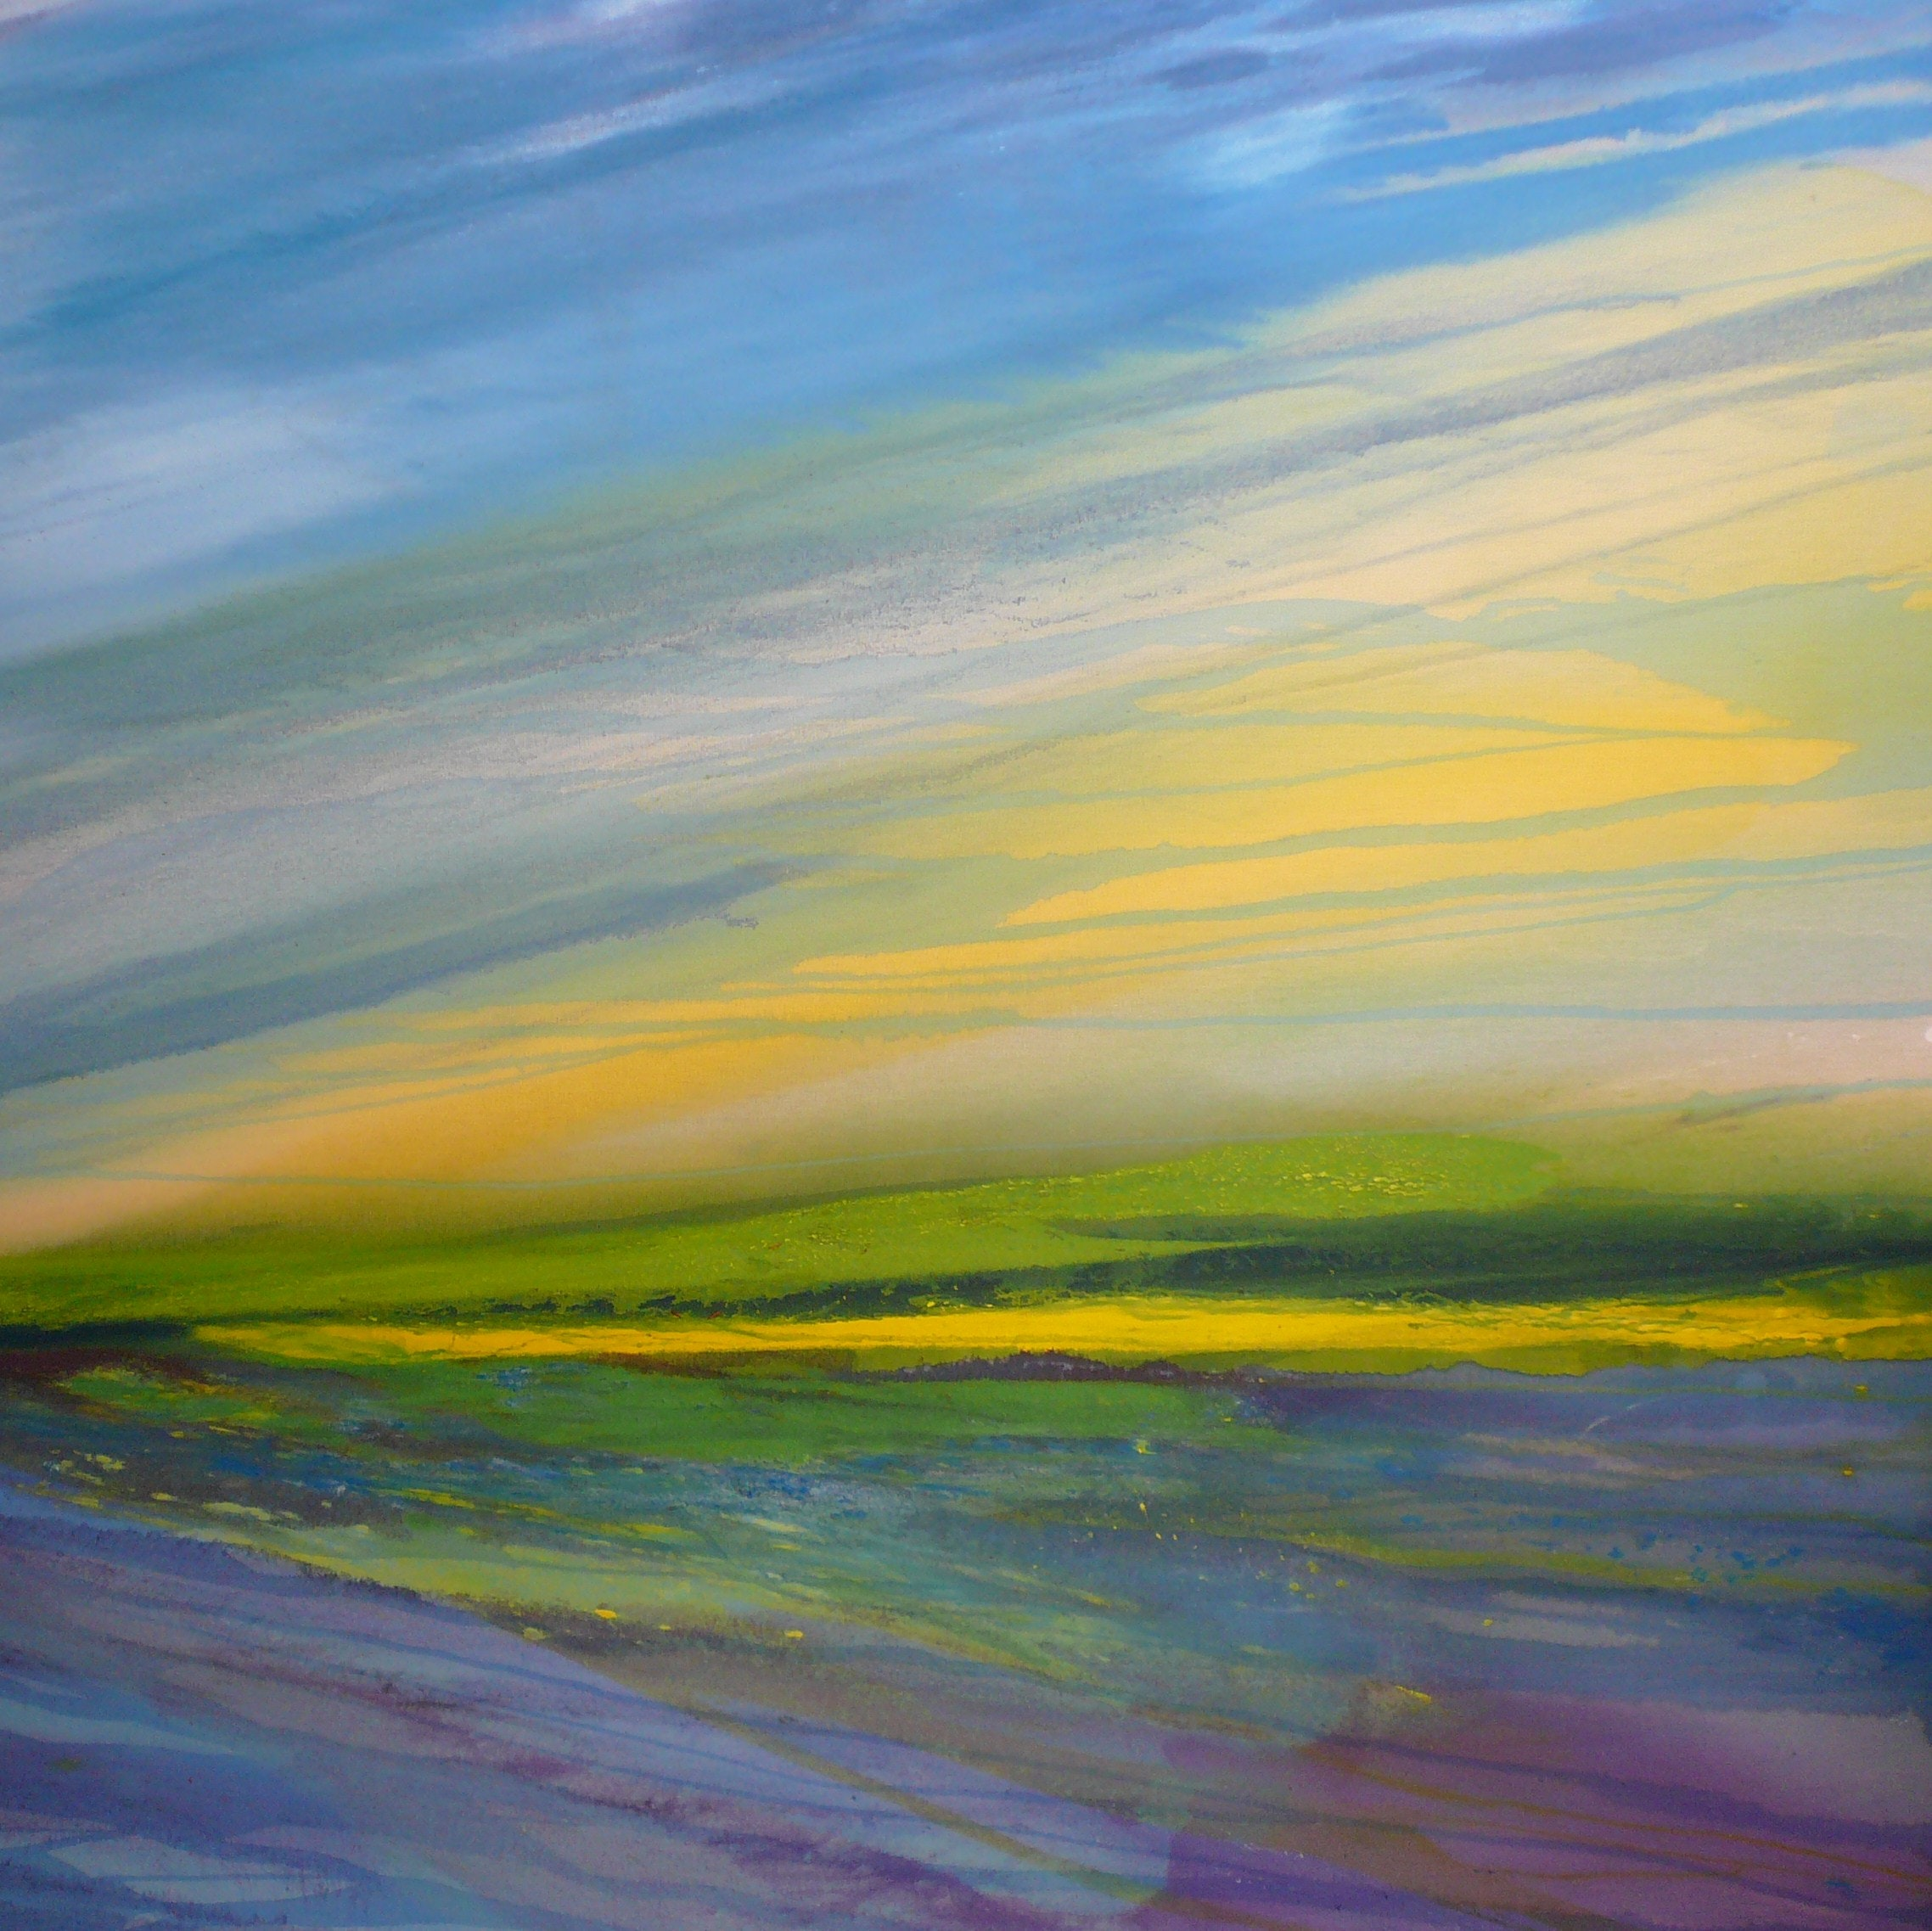 Ruth Hamill - 1. Hamill, Ocean Breeze, November 2008, oil on raw canvas (Horizon series)